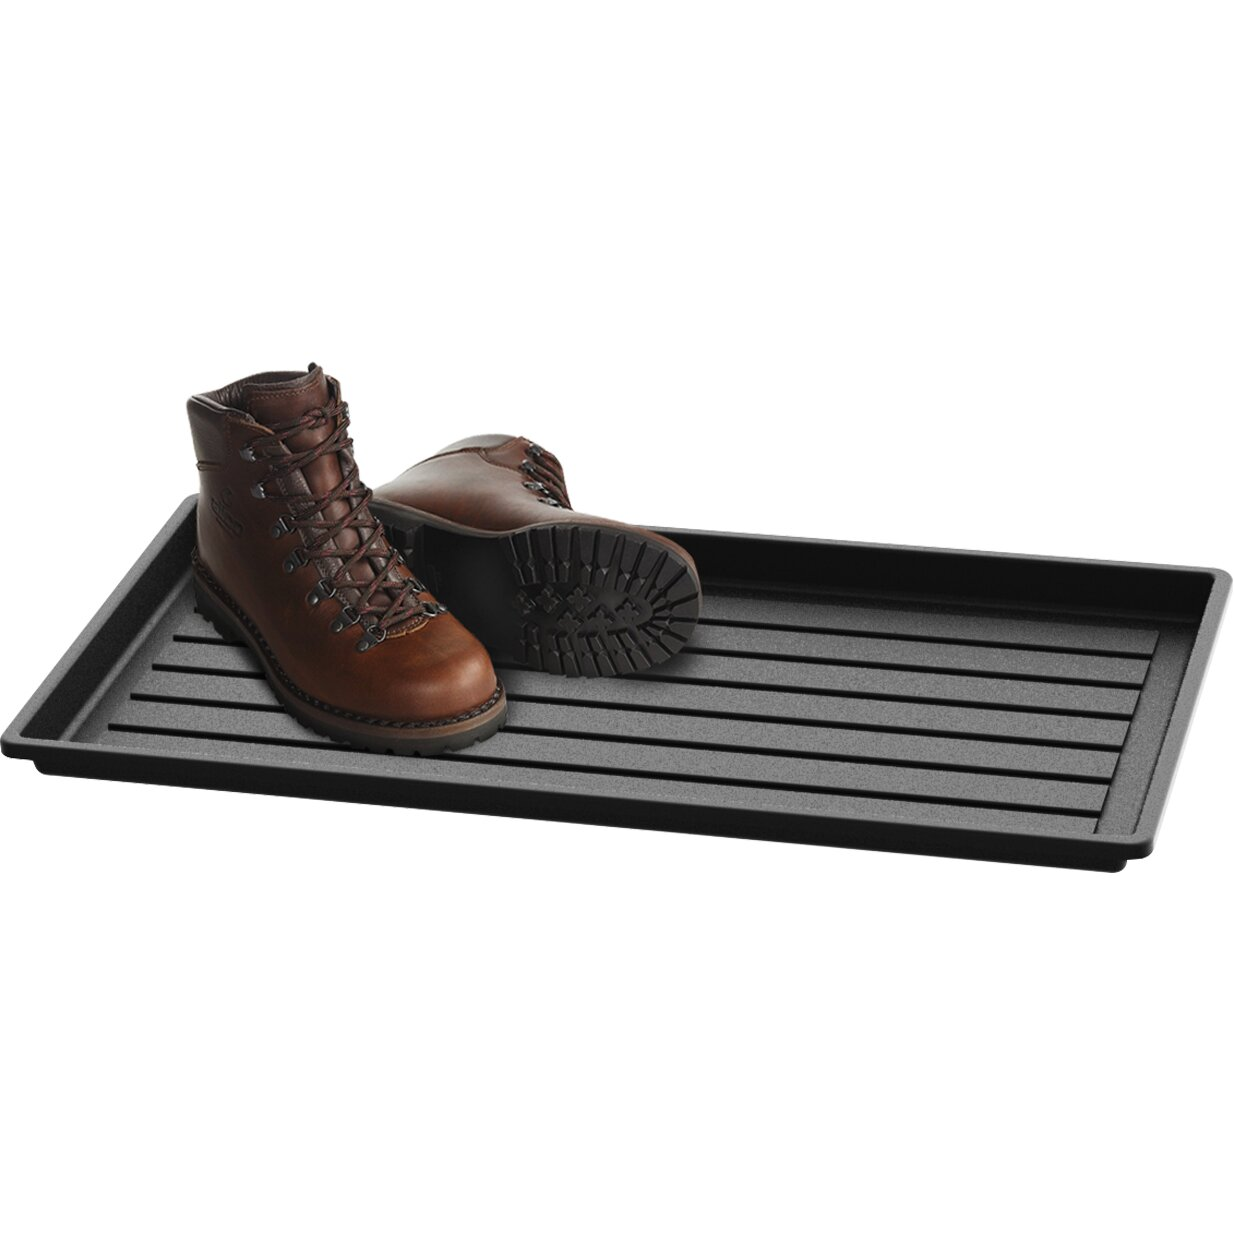 storex boot and shoe household utility tray reviews